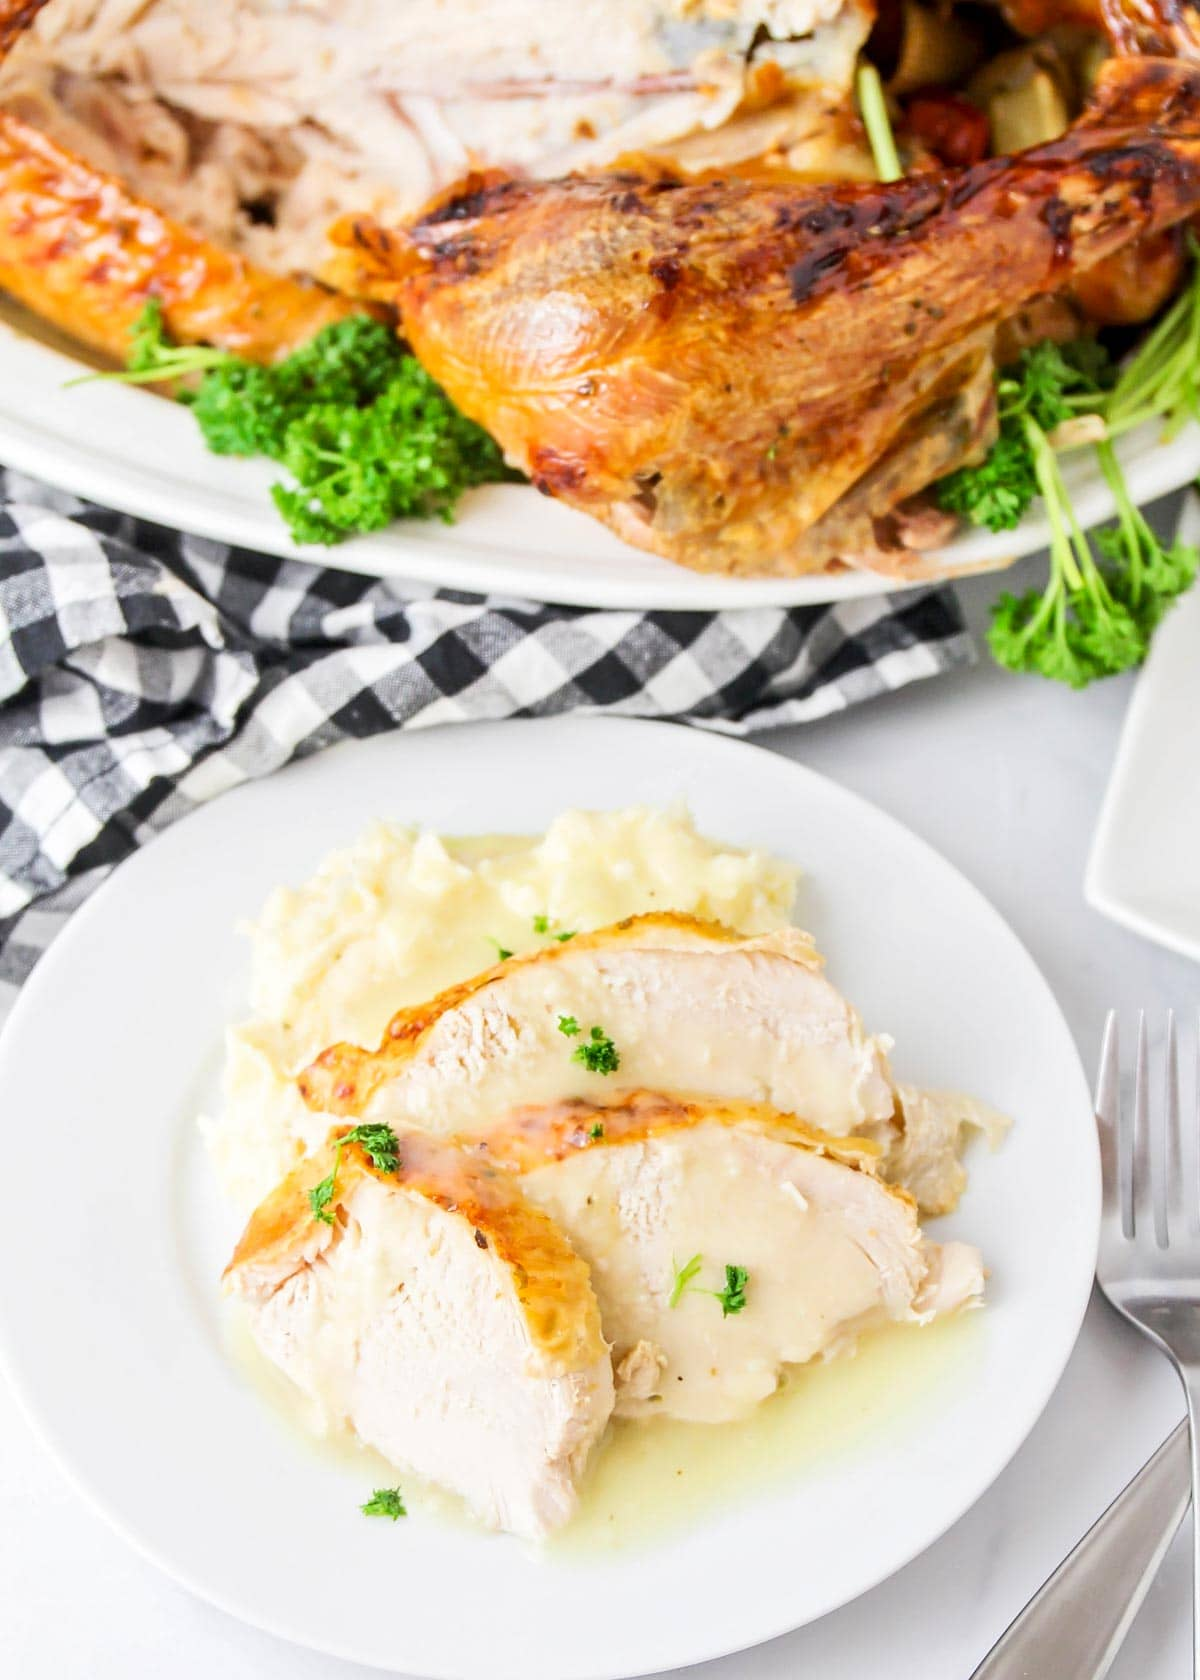 Sliced roasted turkey on a white plate served with mashed potatoes and gravy